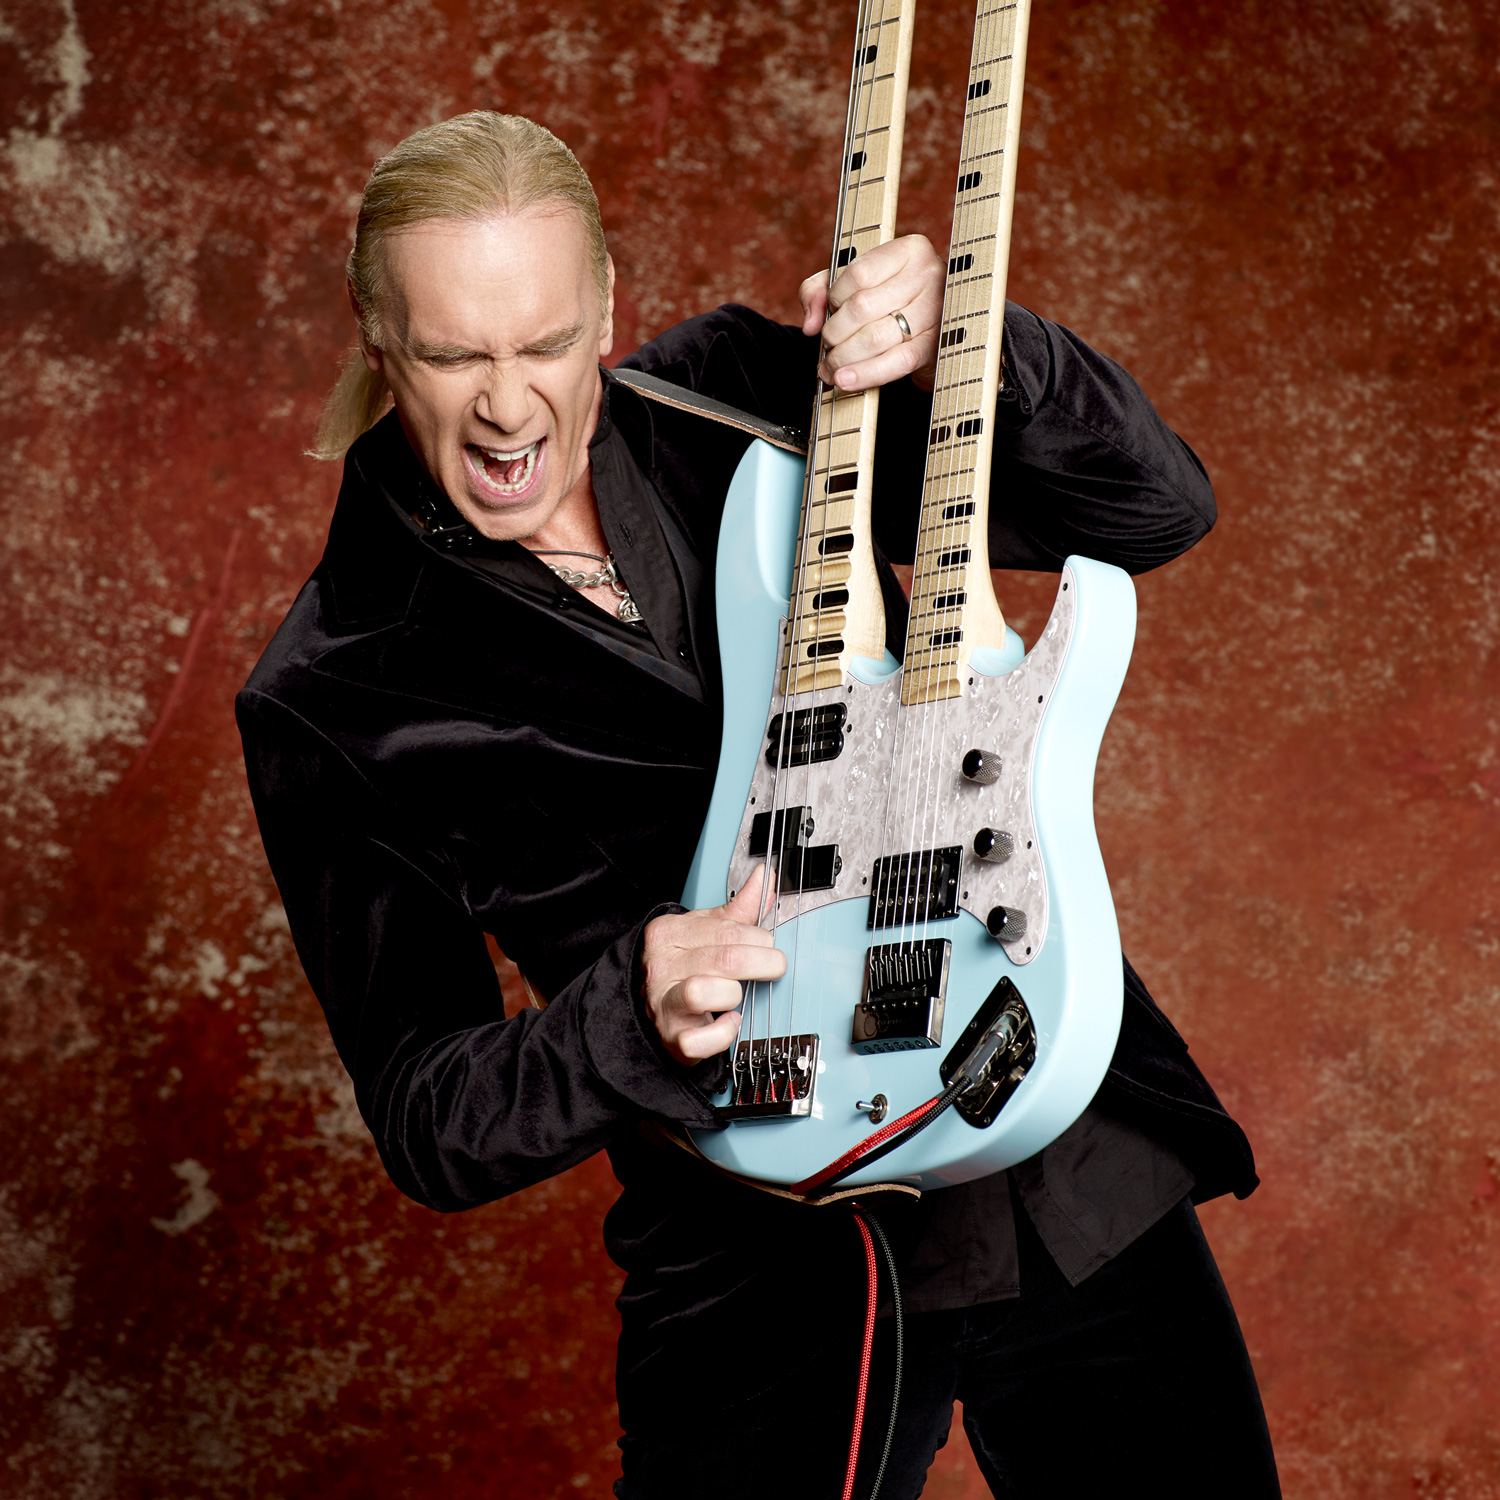 Billy Sheehan photo by Larry DiMarzio